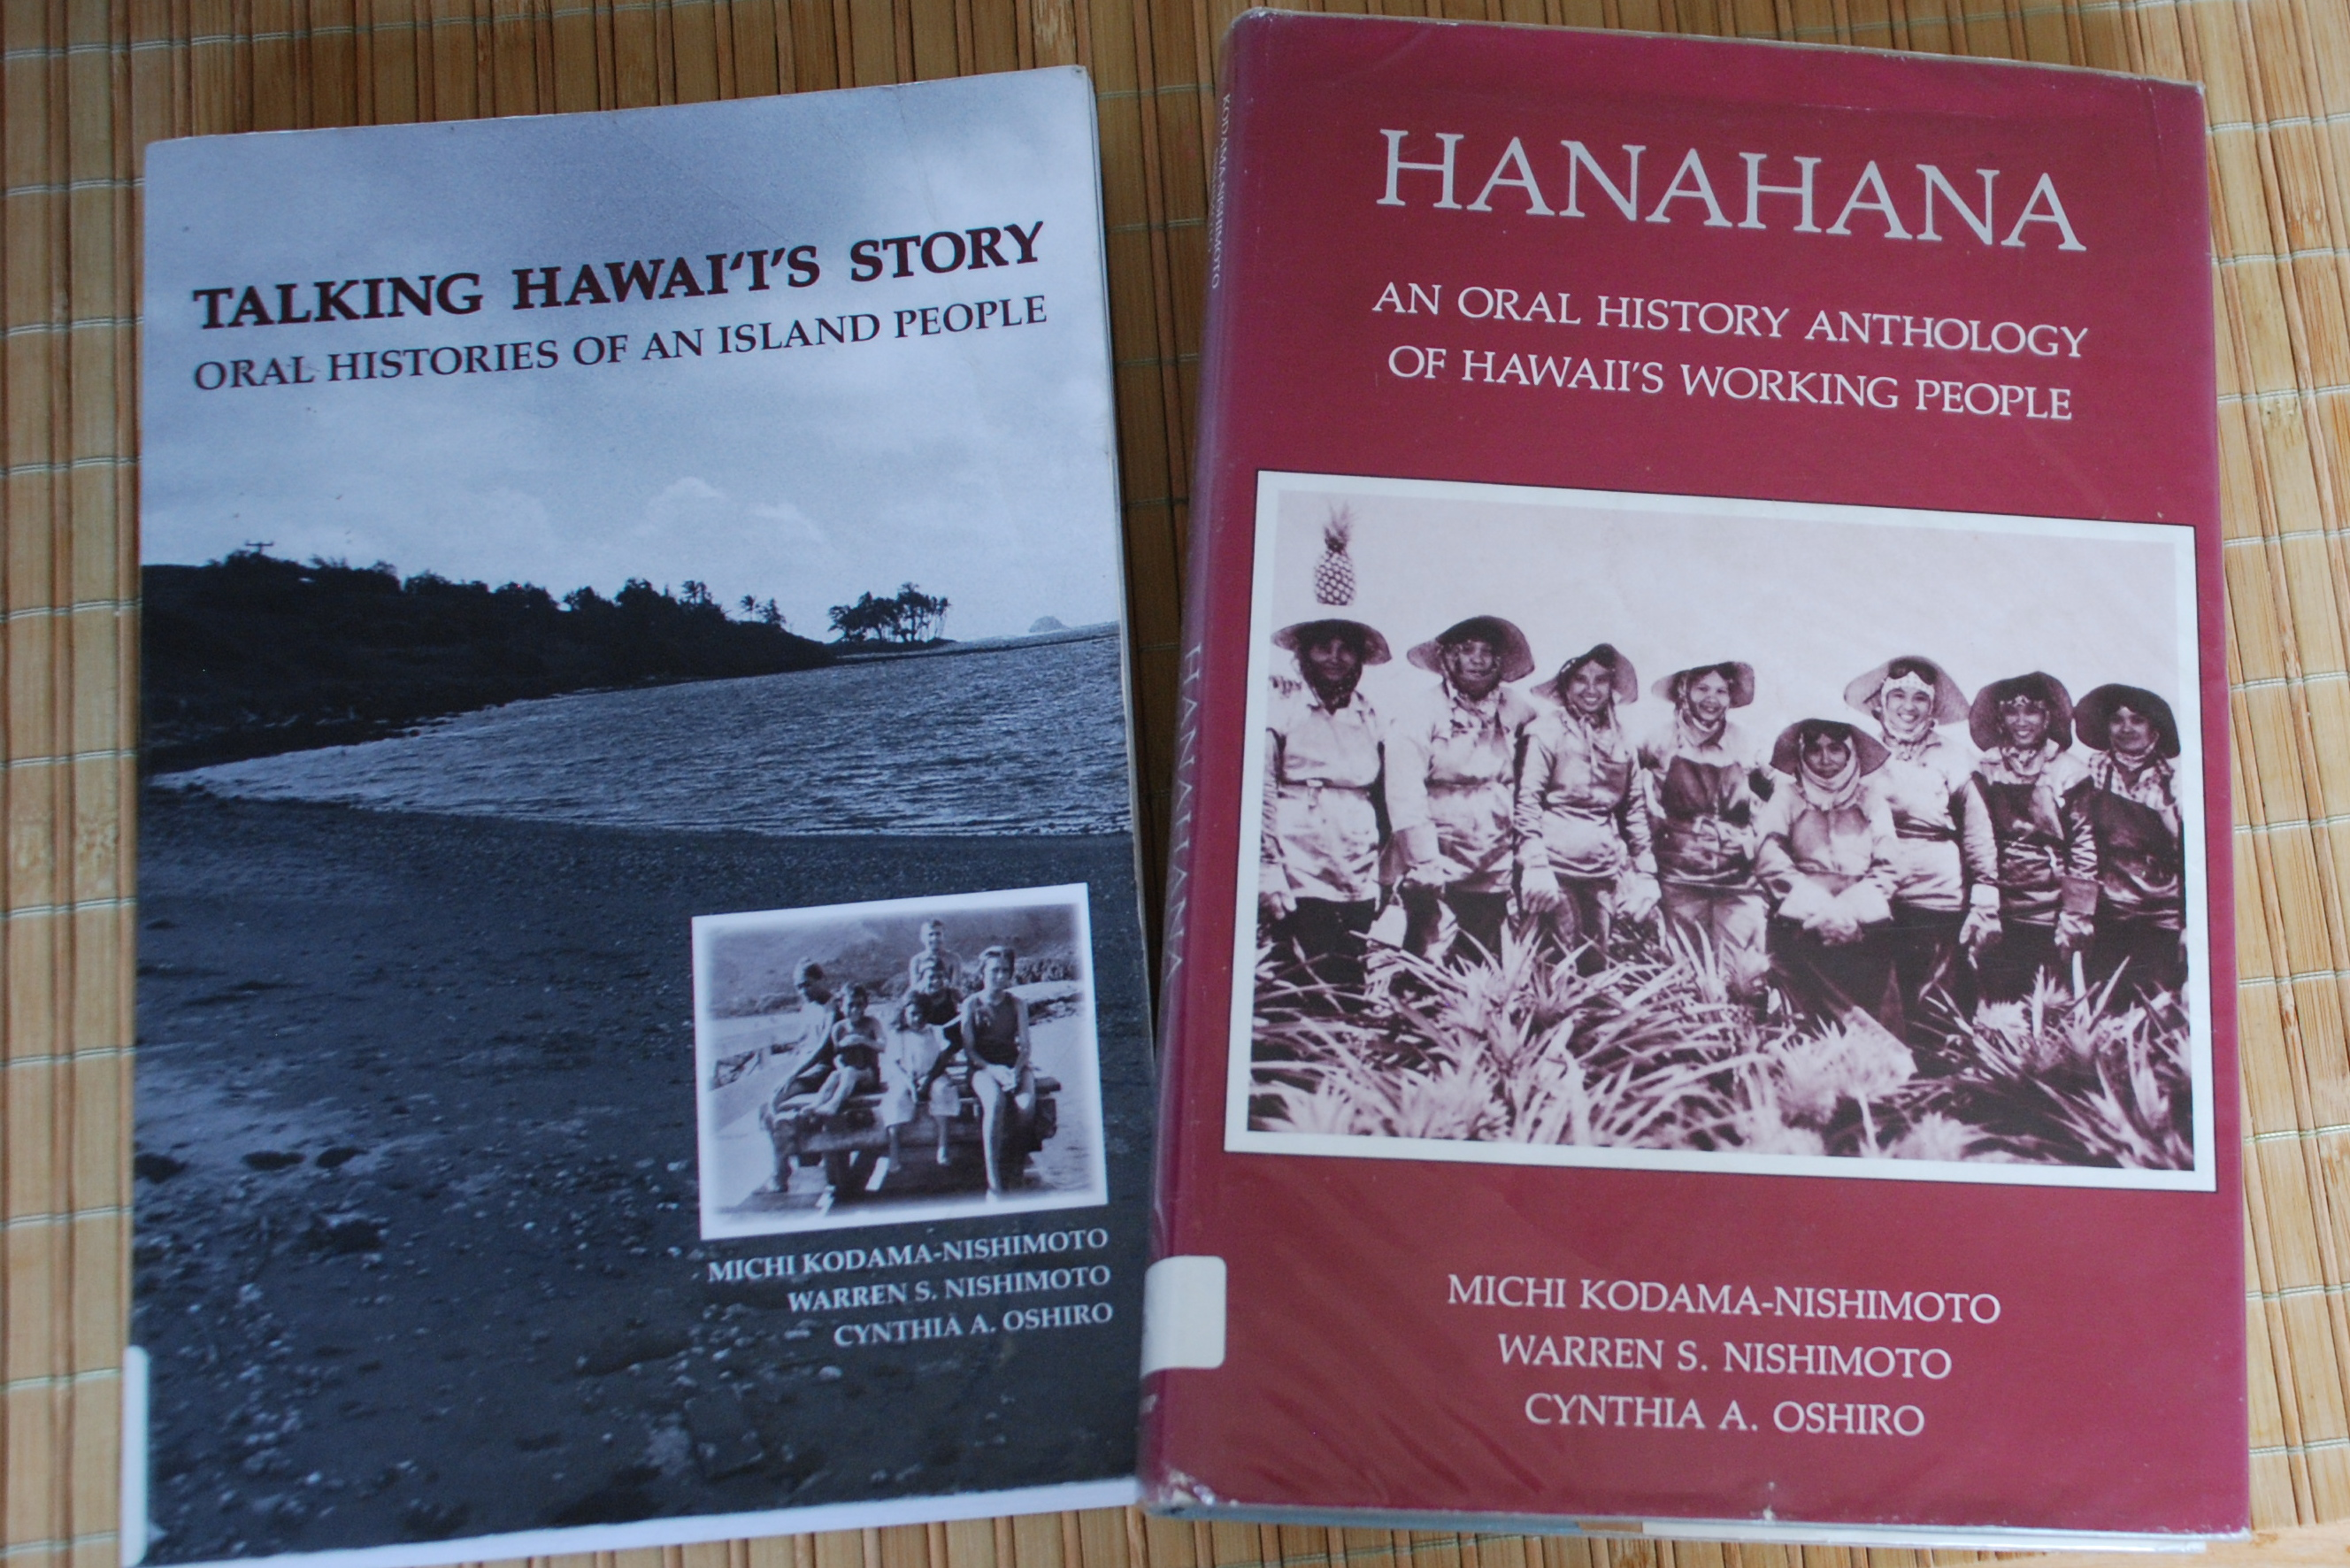 "Two books based on oral history interviews collected by the Center for Oral History —""Hanahana: An Oral History Anthology of Hawaii's Working People"" (1984) and the 2009 book, ""Talking Hawai'i's Story: Oral Histories of an Island People."""